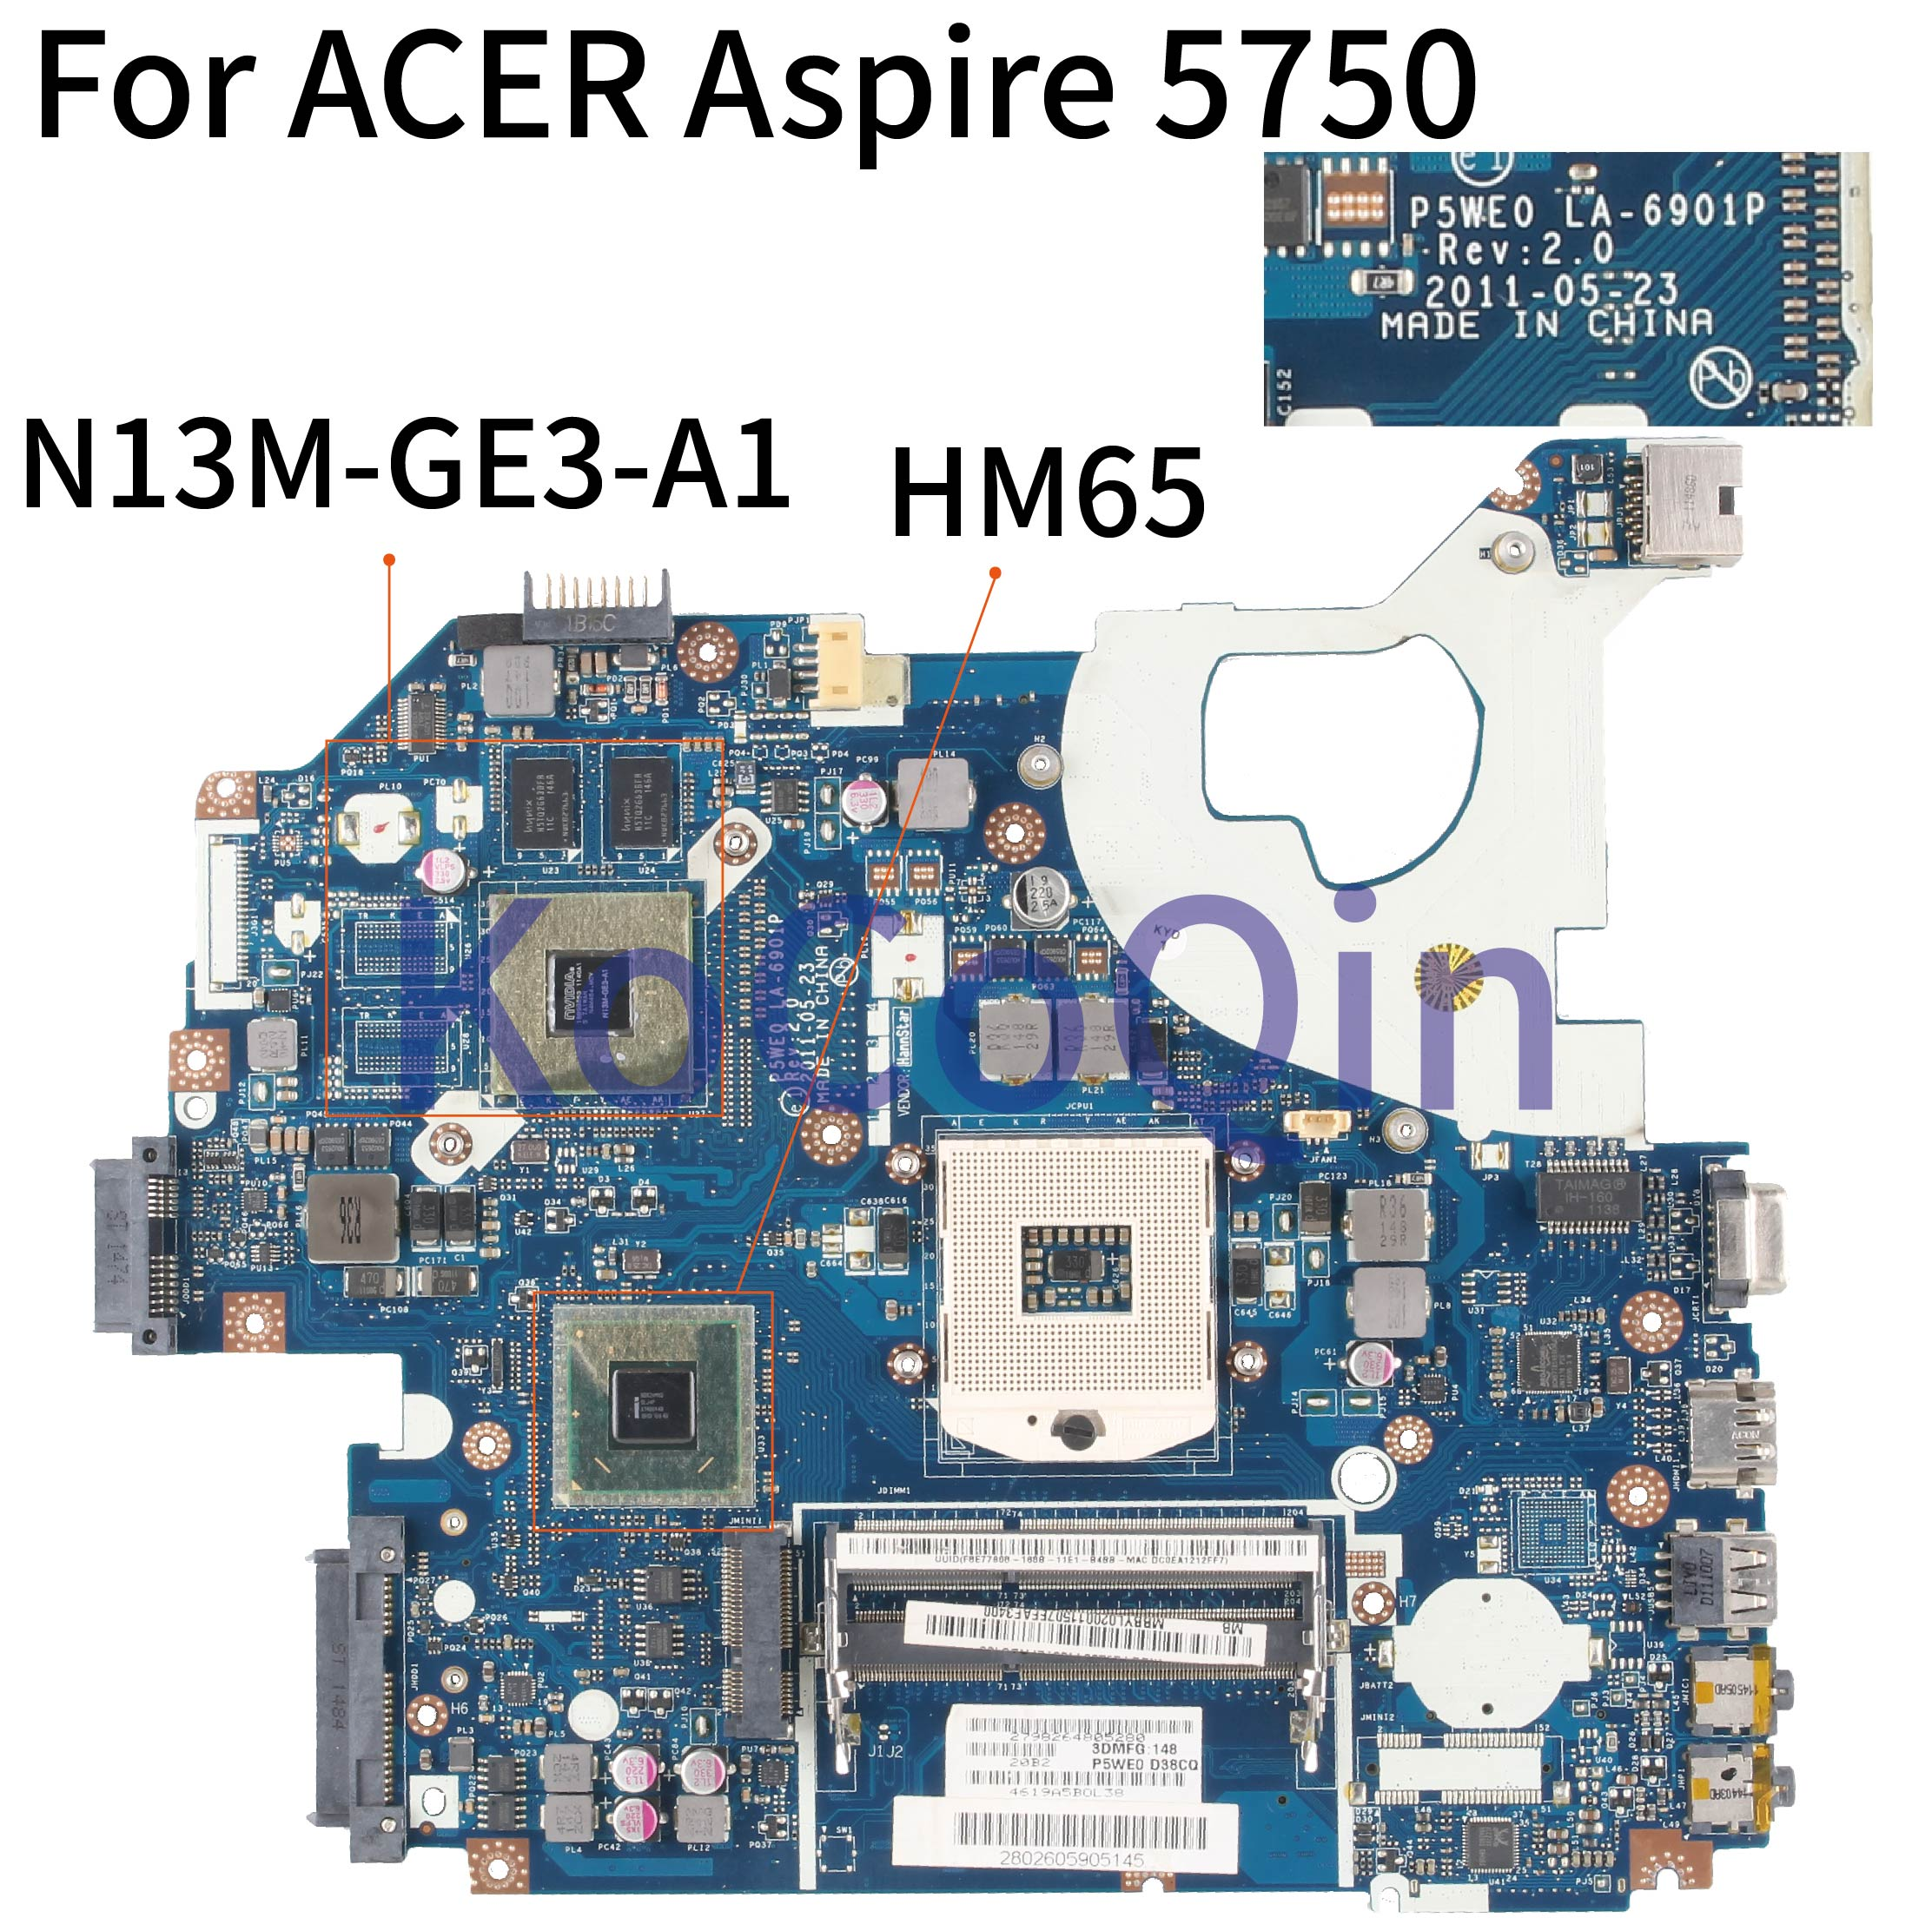 KoCoQin Laptop Motherboard For ACER Aspire 5750 5750G GT520M Mainboard P5WE0 LA-6901P MBBYL02001 HM65 N13M-GE3-A1